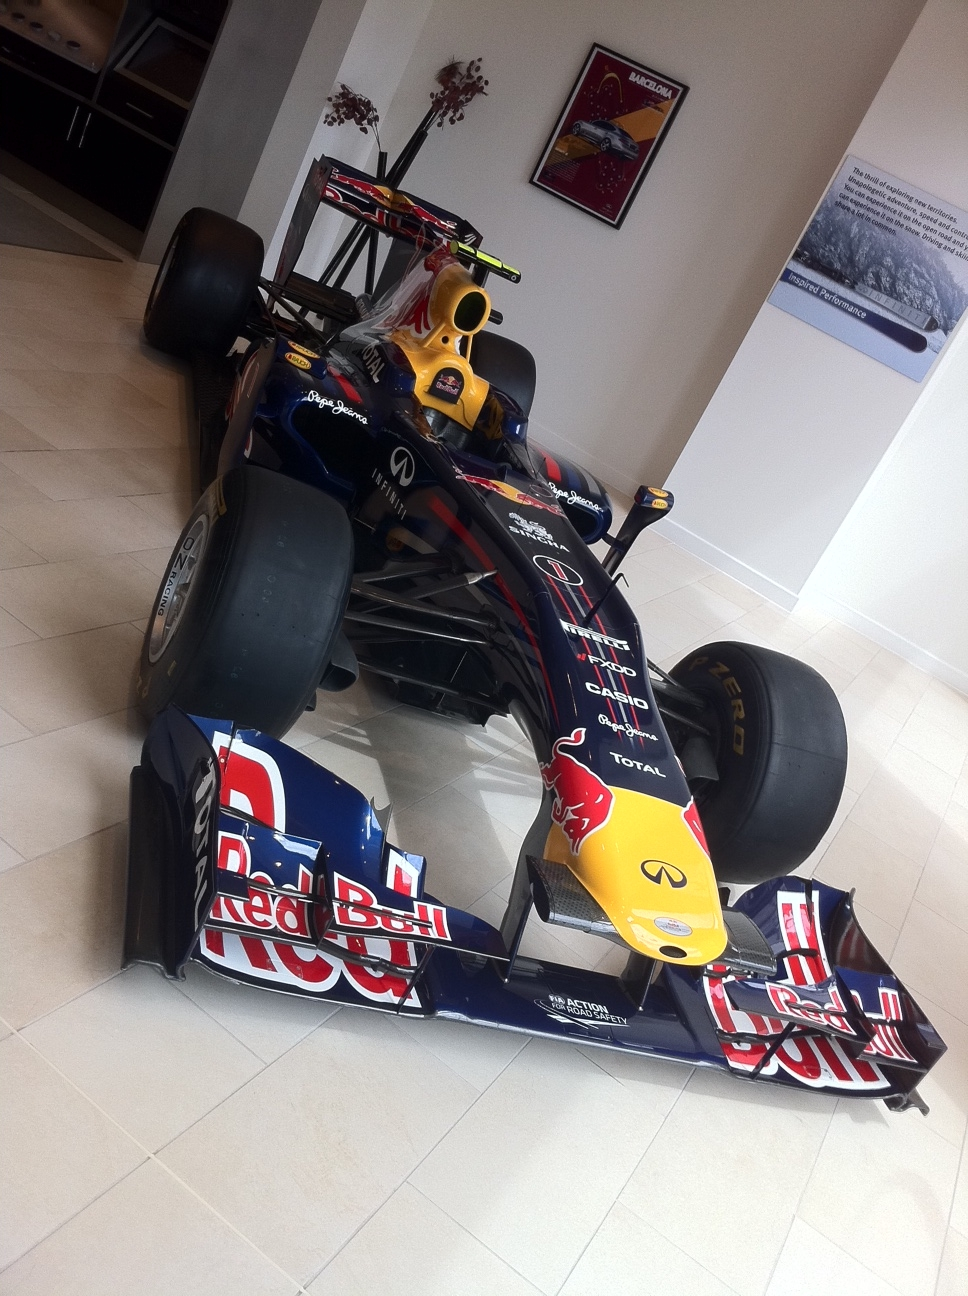 vettel-2010-f1-car-rb6-in-mayfair-london-front-angle